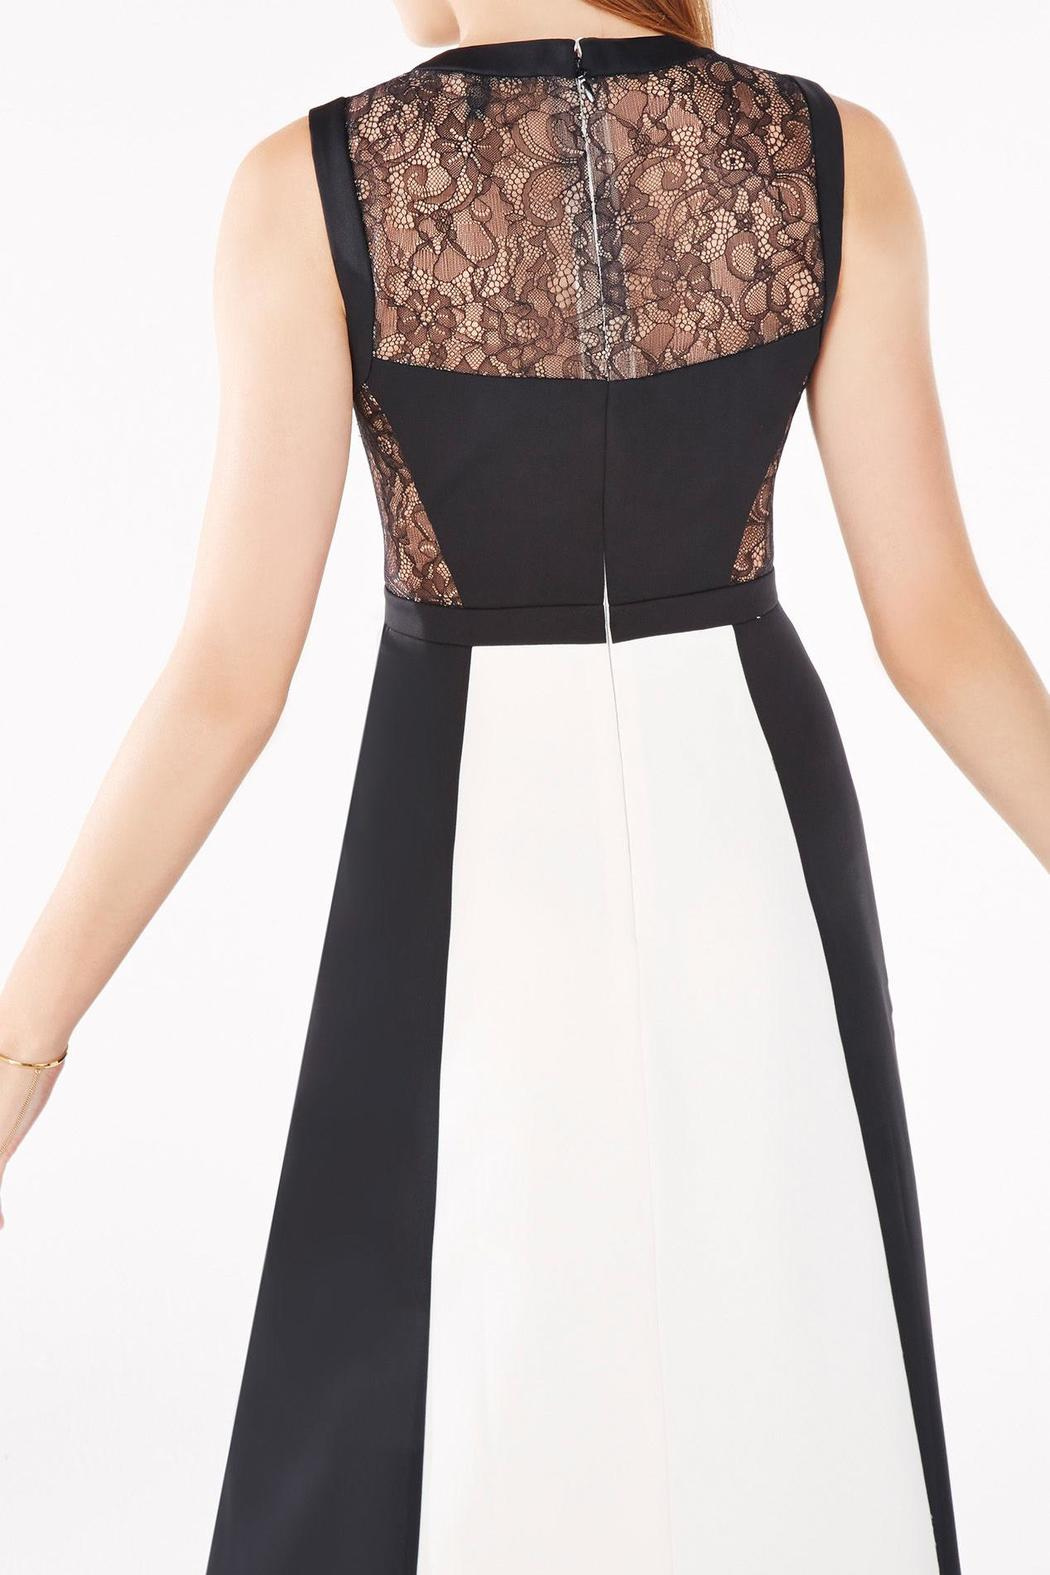 BCBG Max Azria Black & Off-White Evening Gown from Georgia by High ...